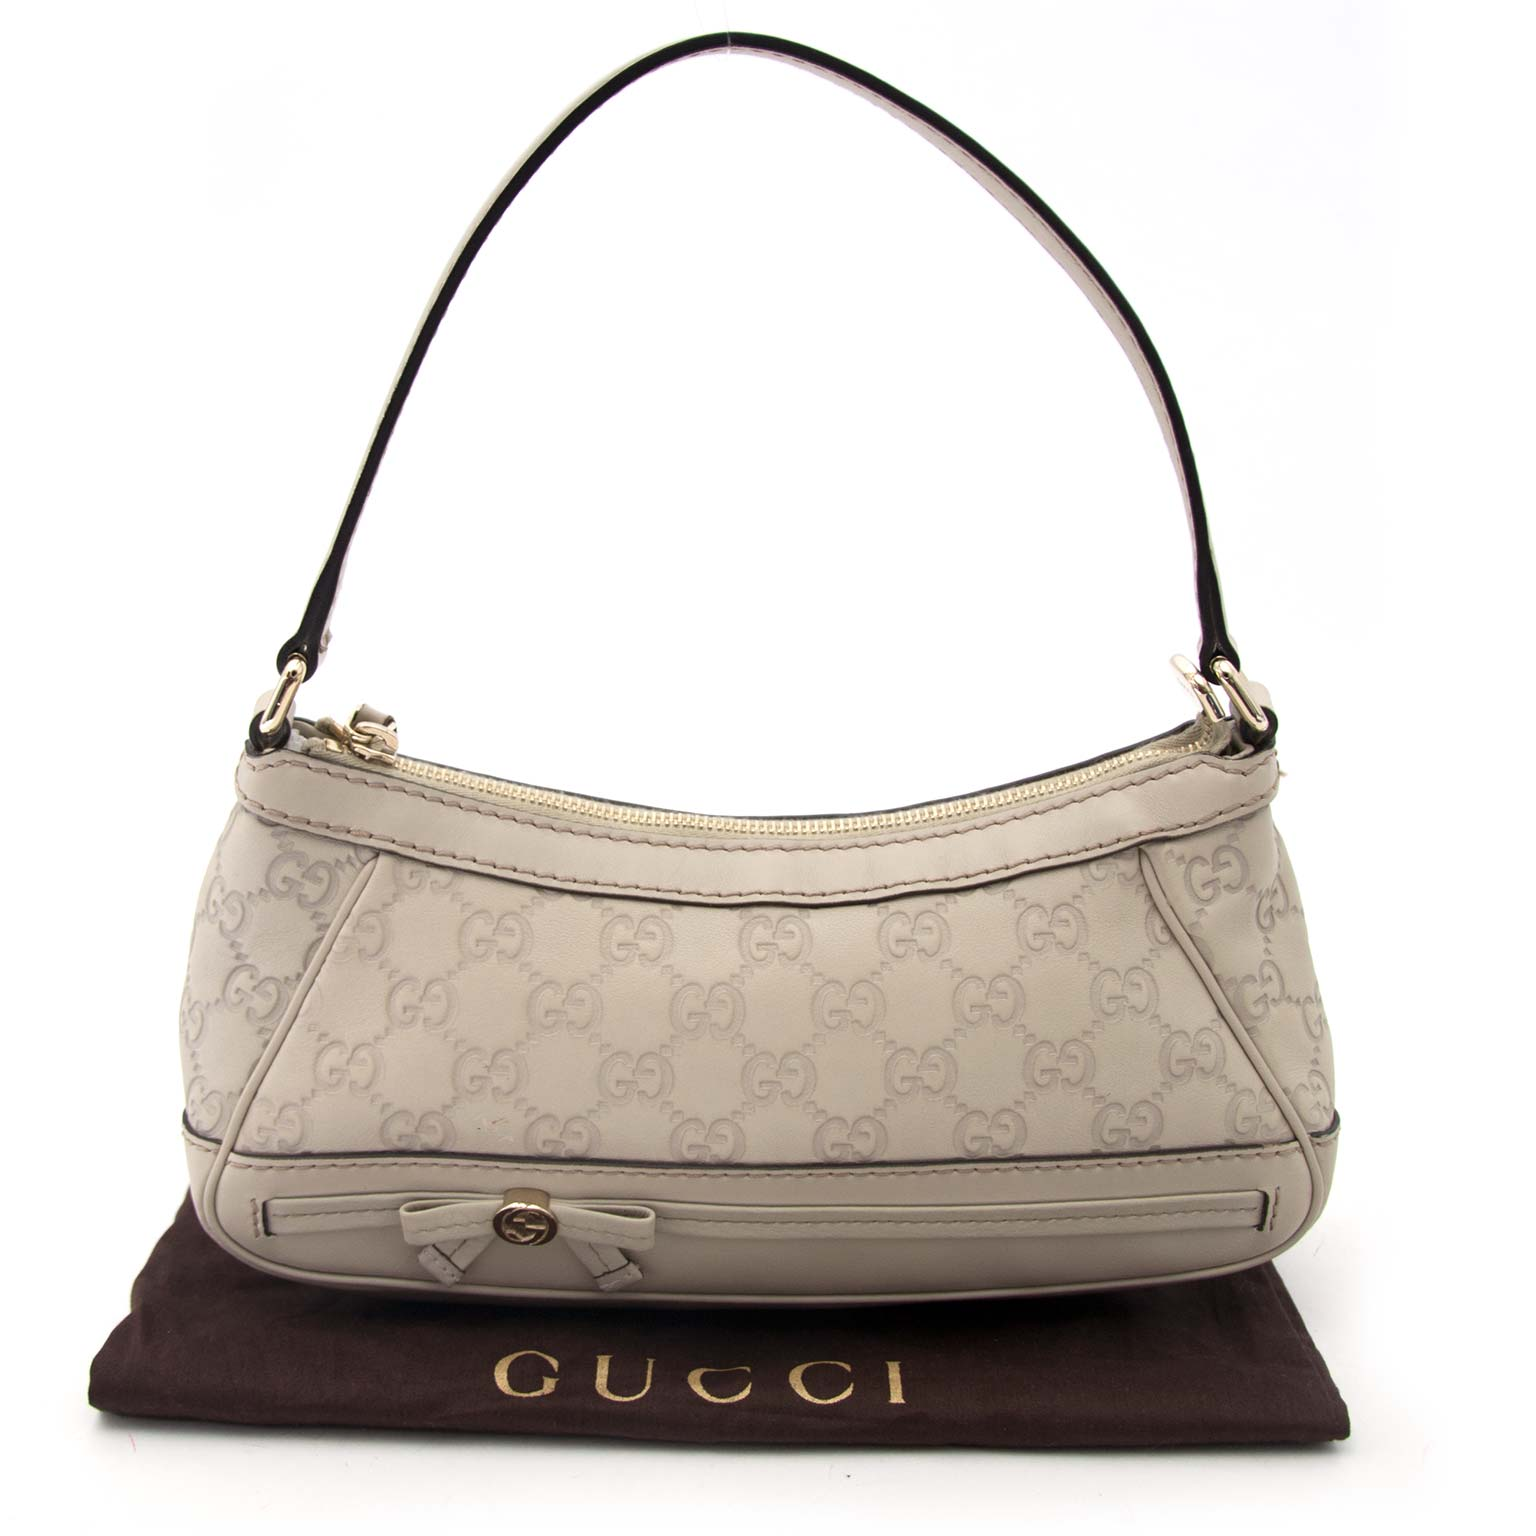 Gucci Small Beige Leather Bag With Monogram Pattern